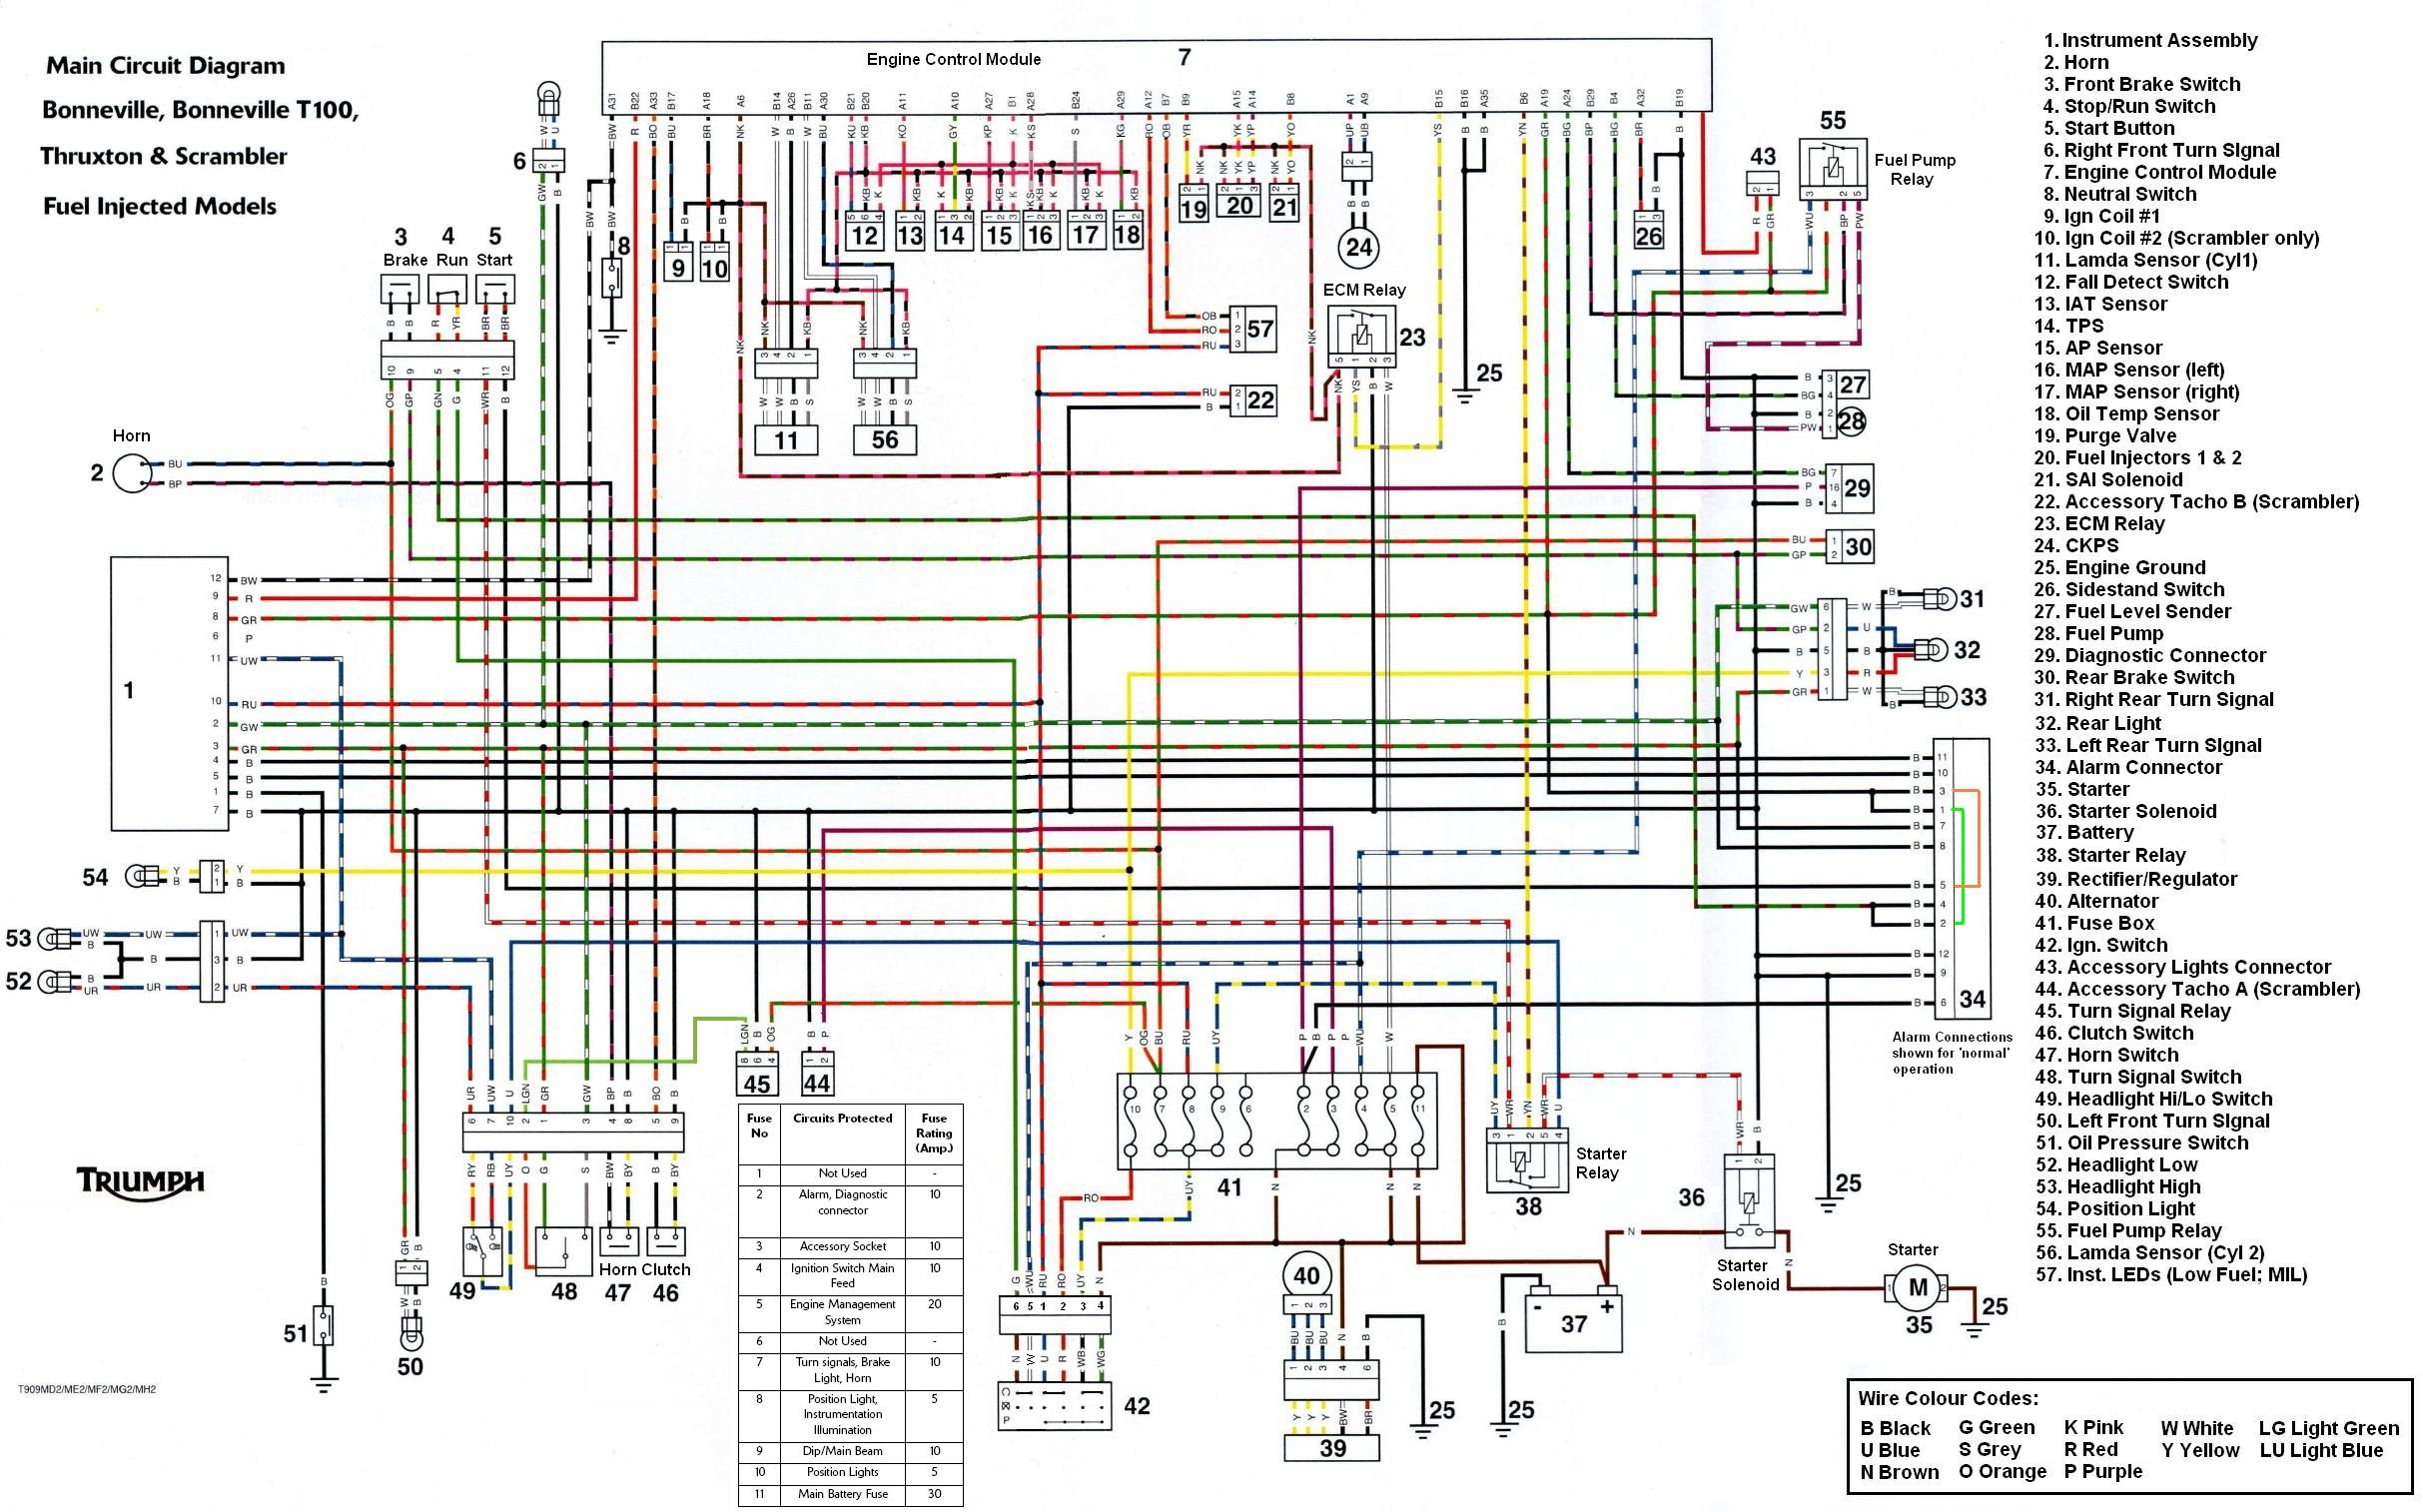 triumph wiring diagram triumph image wiring sv650 wiring diagram sv650 image wiring diagram on triumph 650 wiring diagram